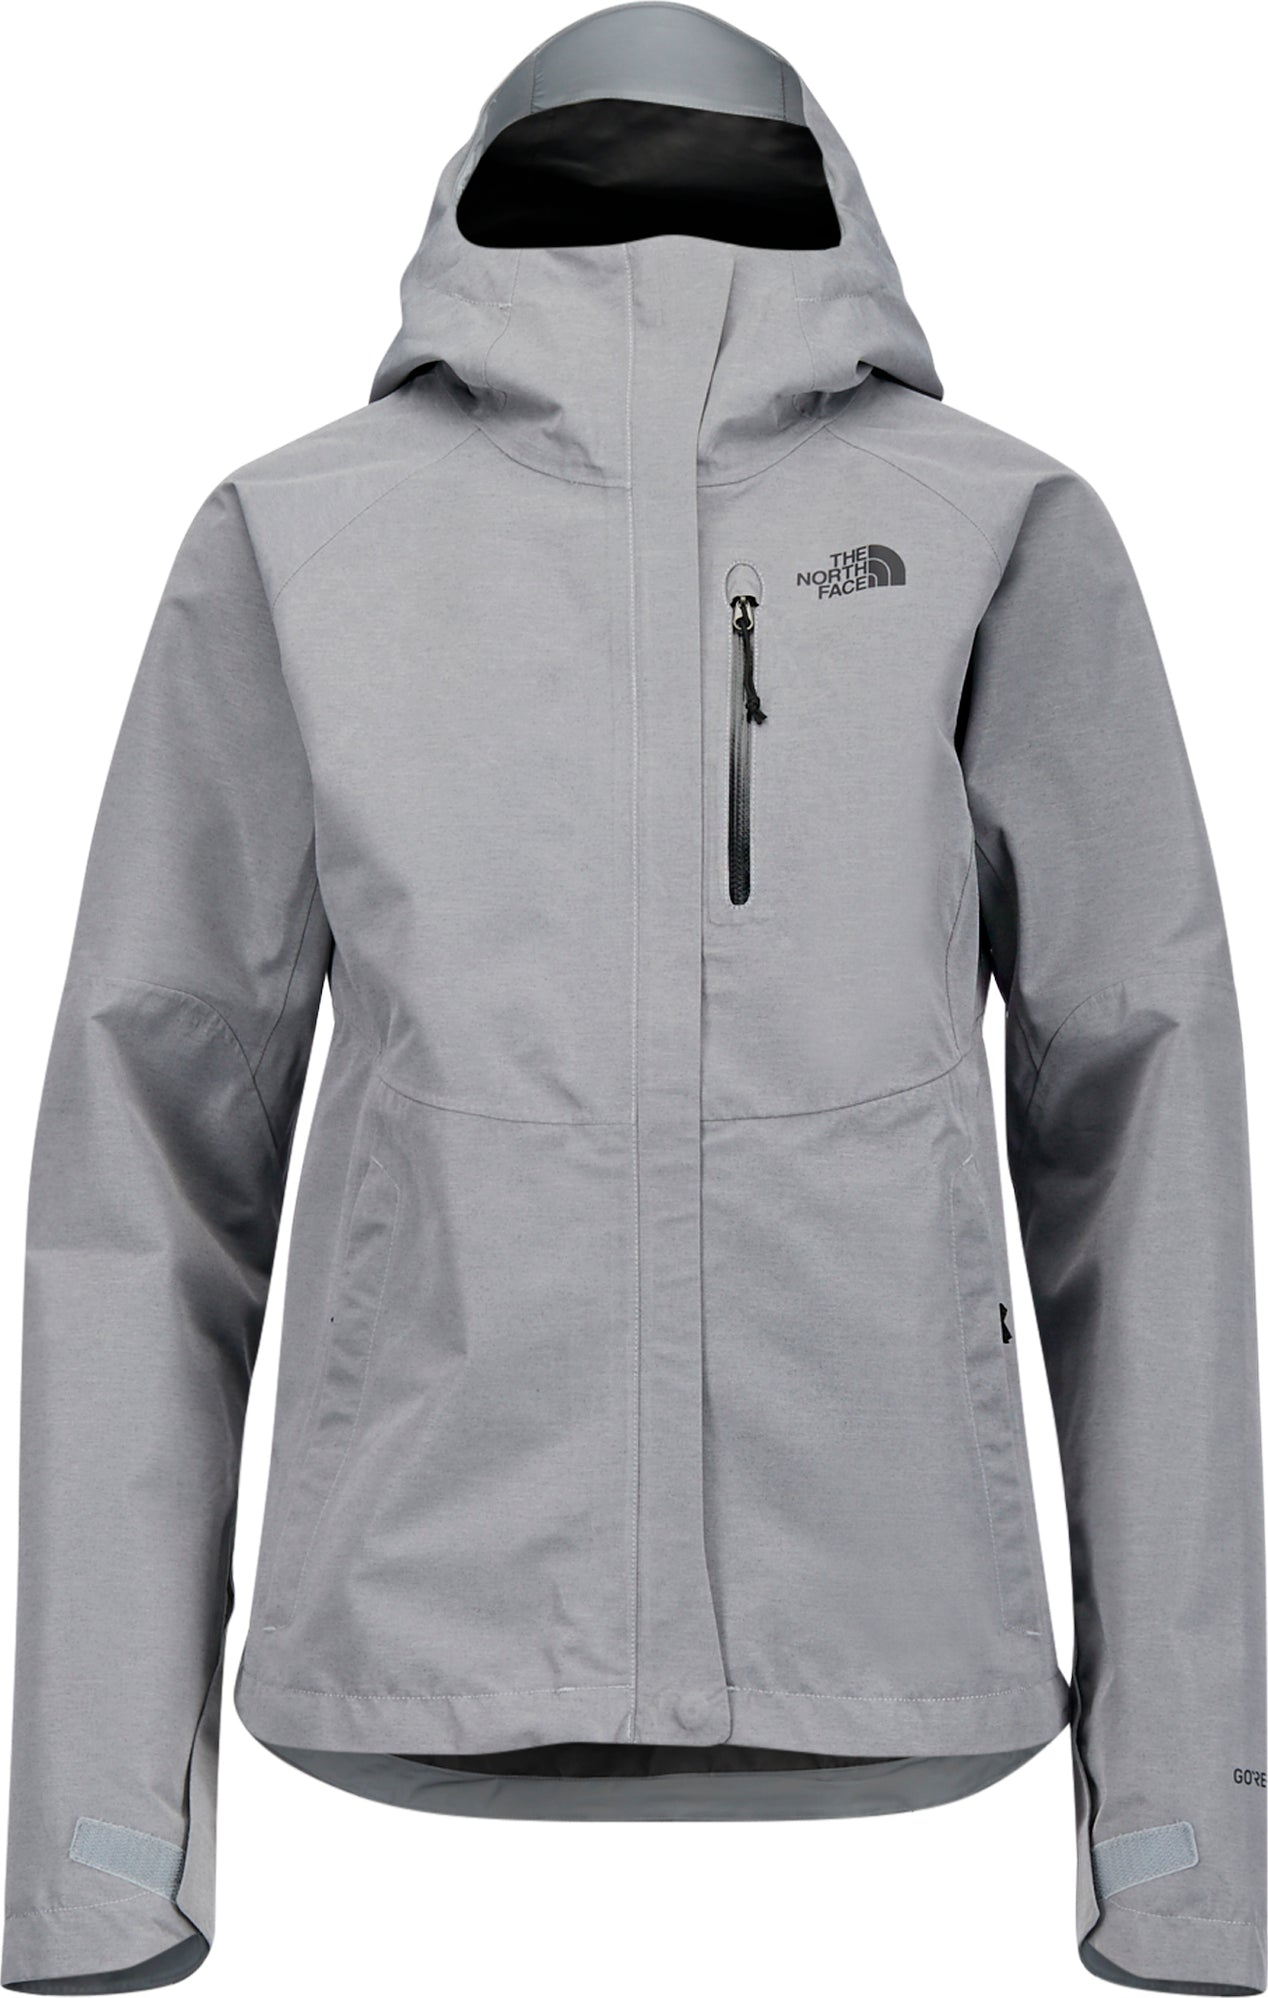 532280088 The North Face Dryzzle Jacket - Women's